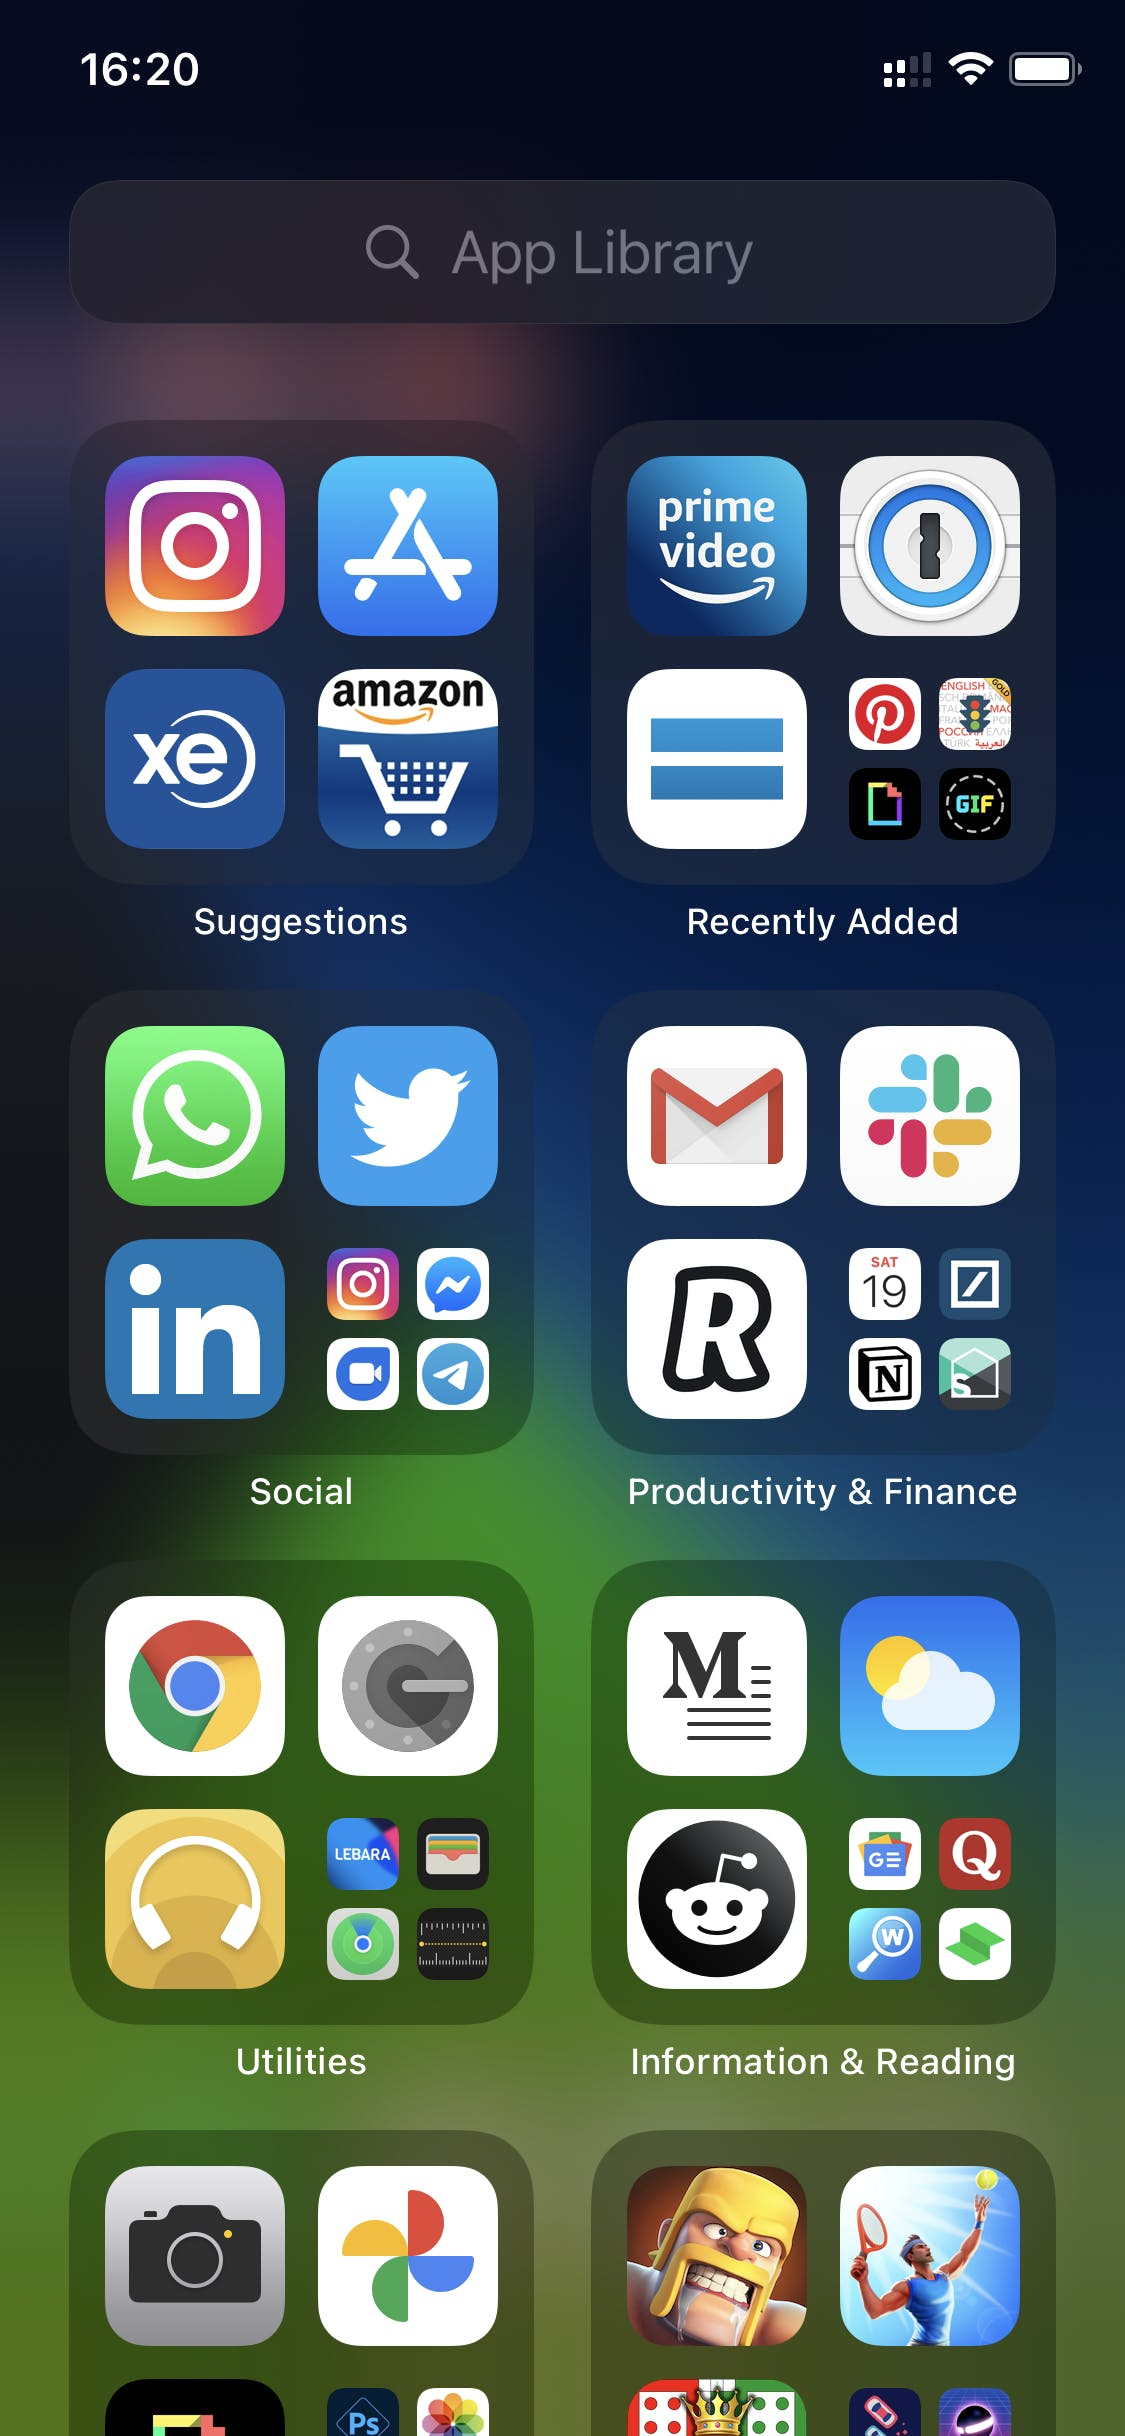 App Library. Provided by author